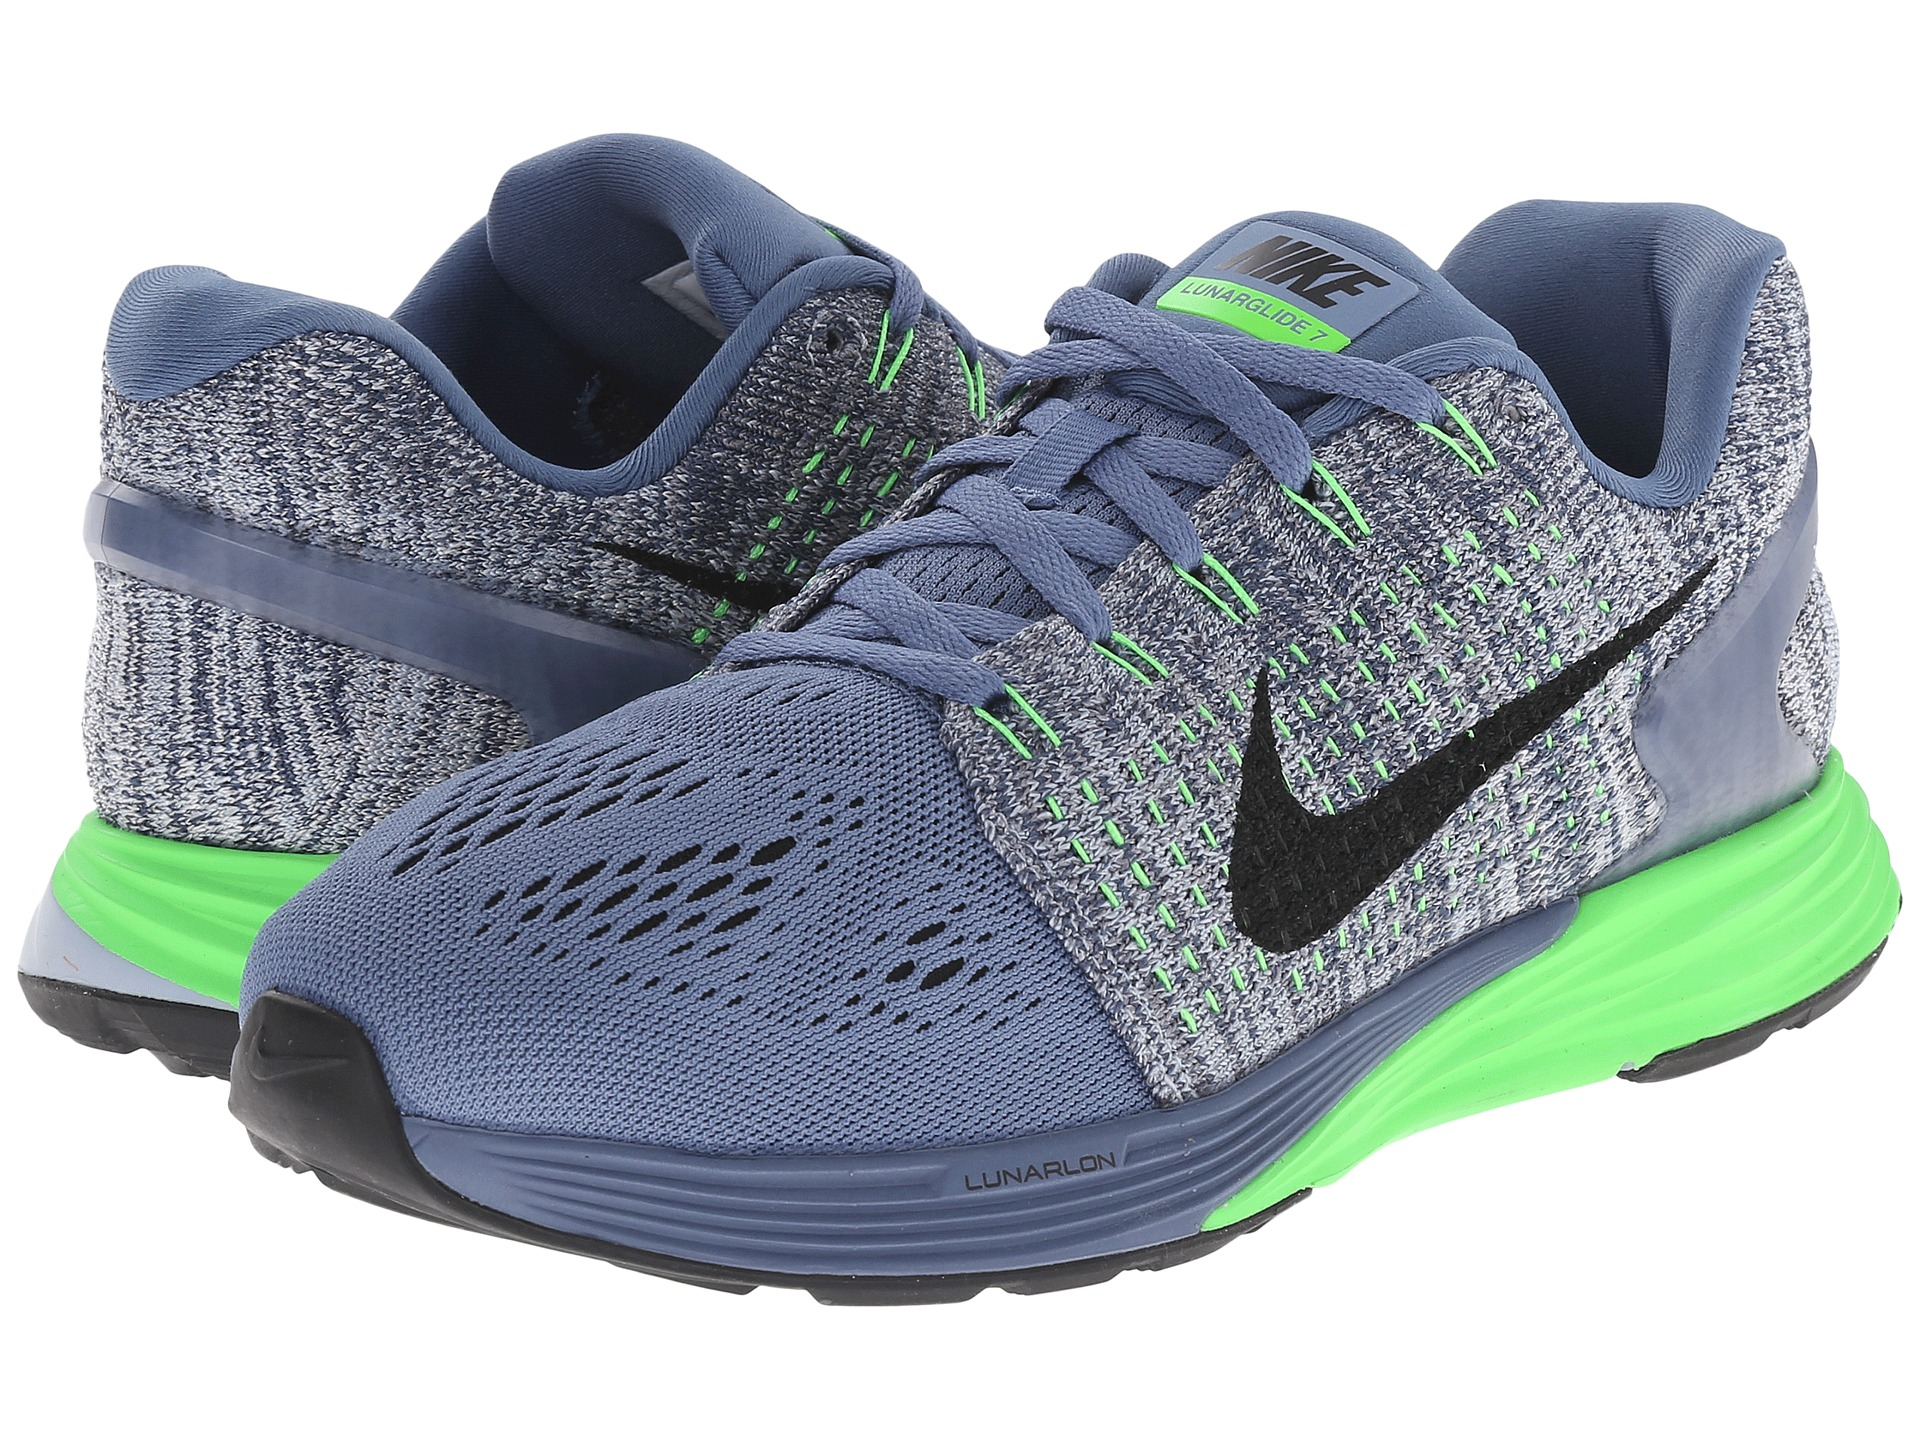 cheap for discount 8c037 58426 Nike Lunarglide 7 in Blue - Lyst